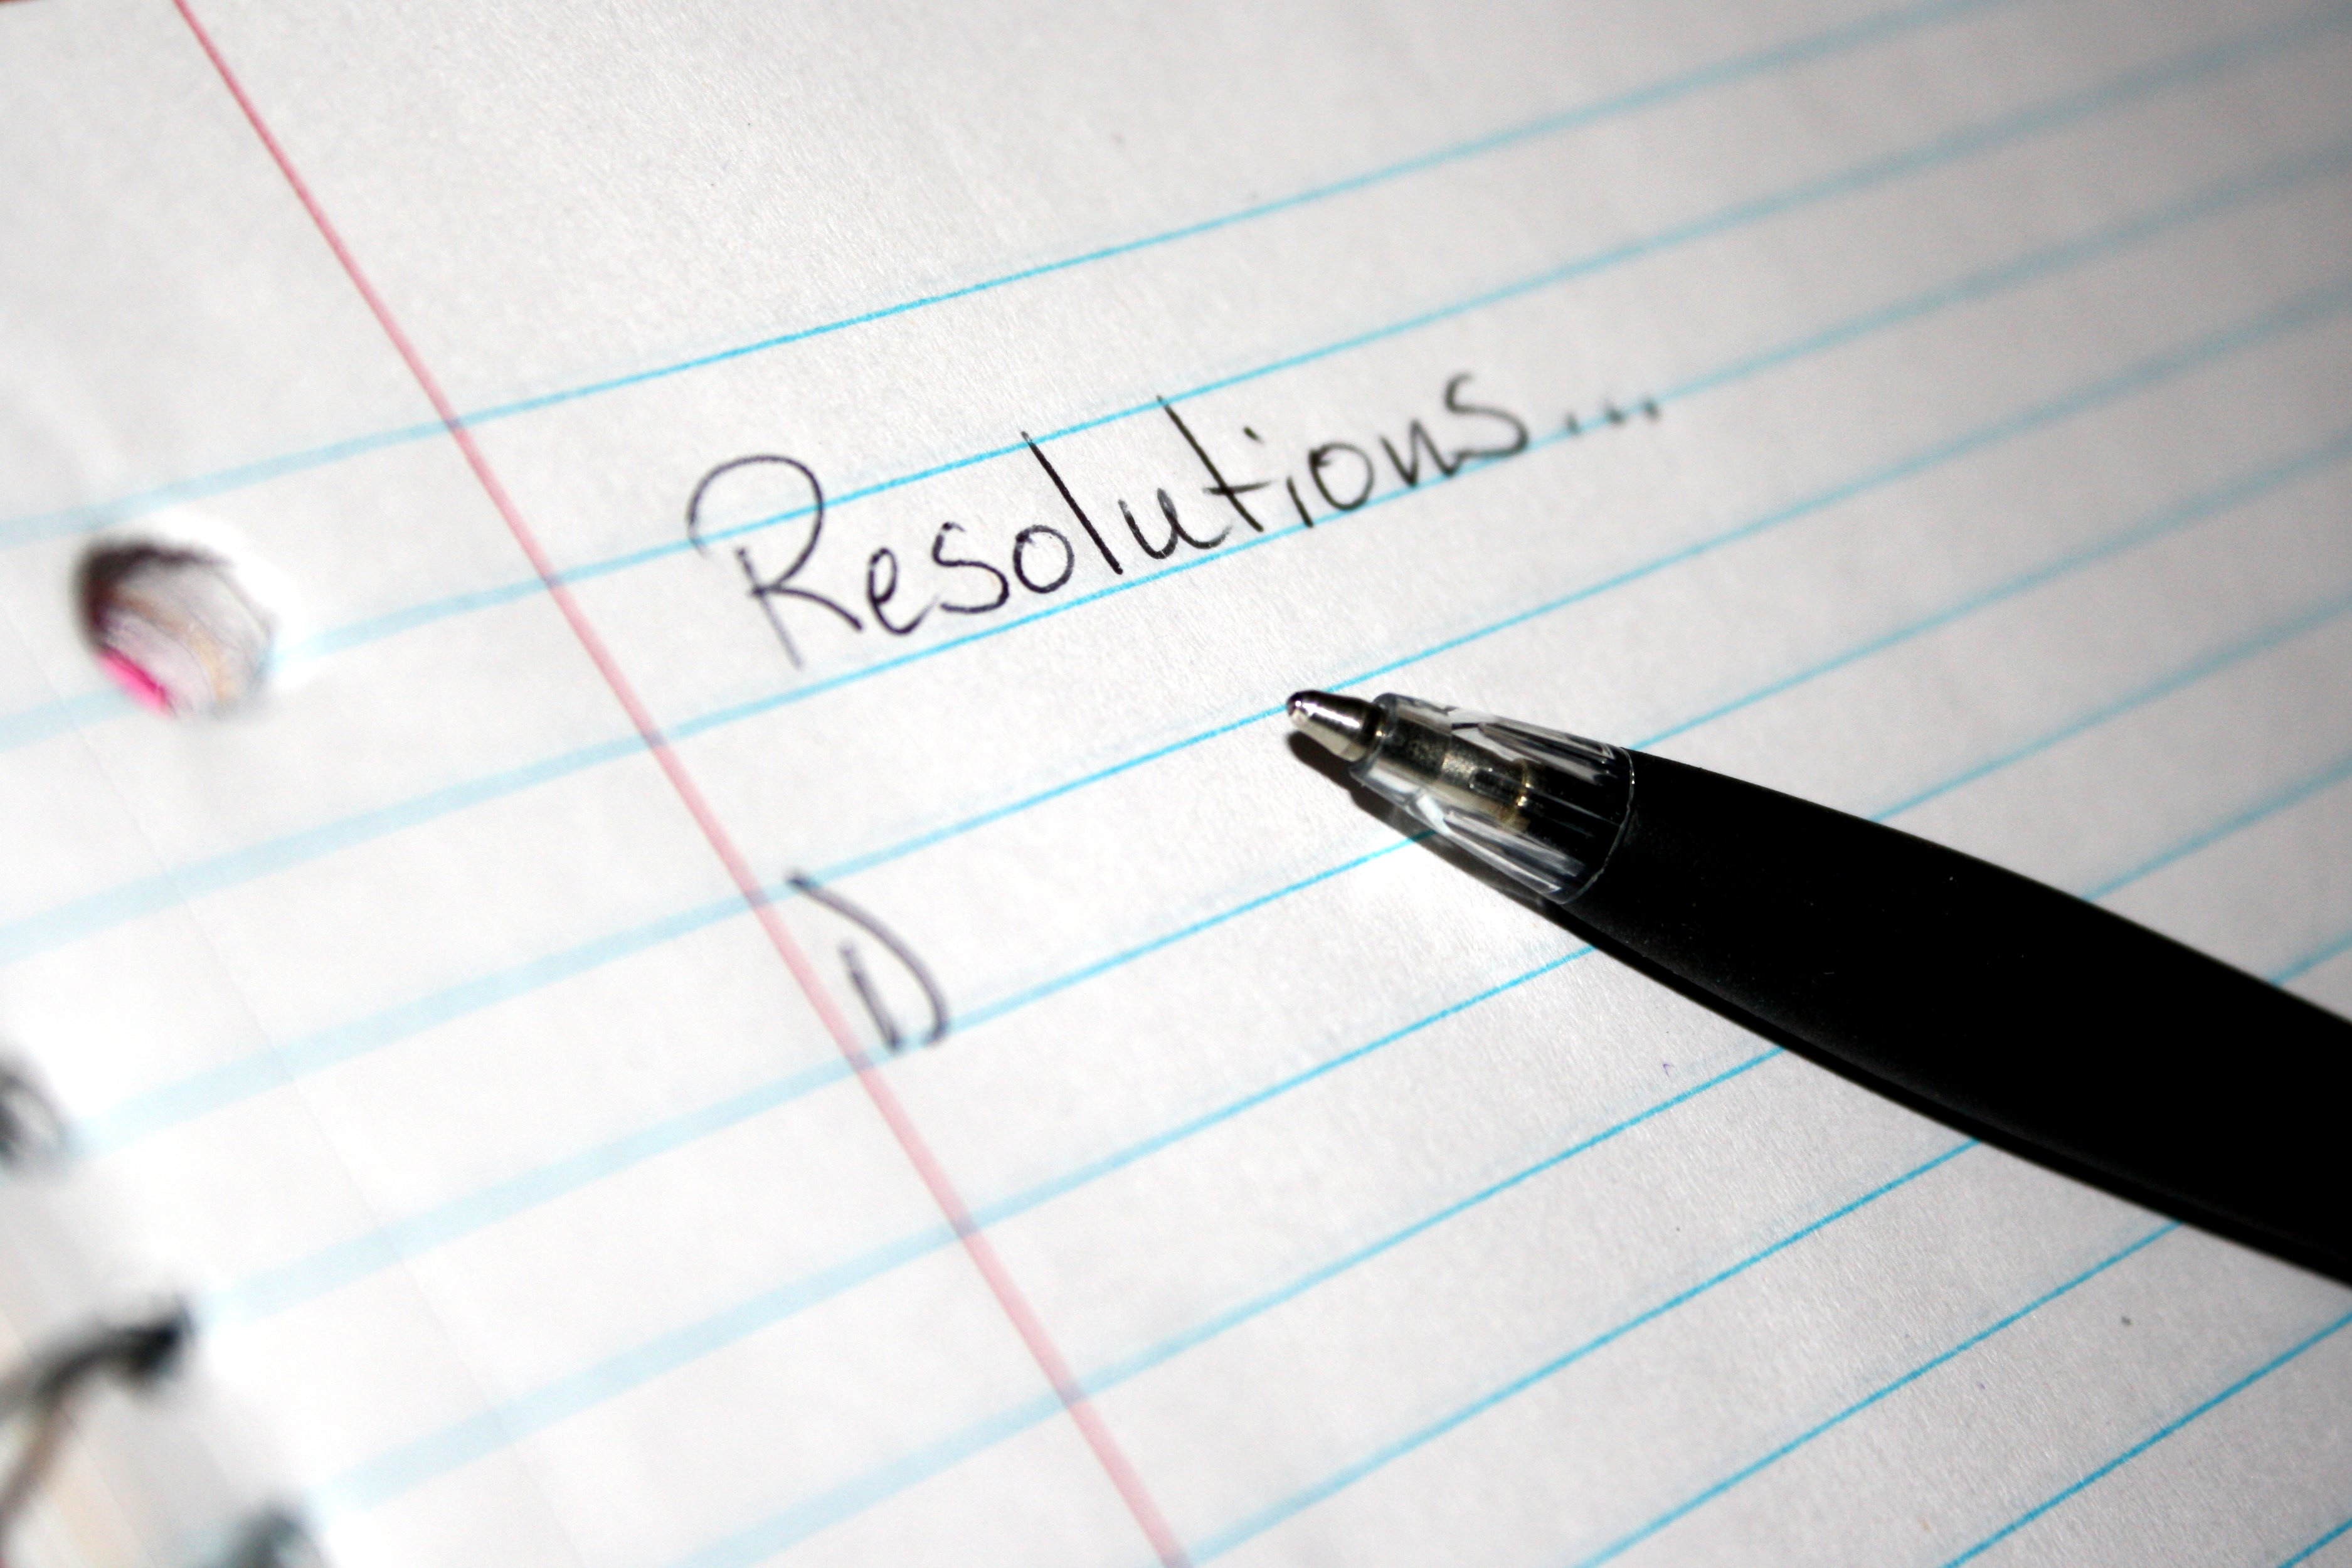 My freelancer resolutions for 2014